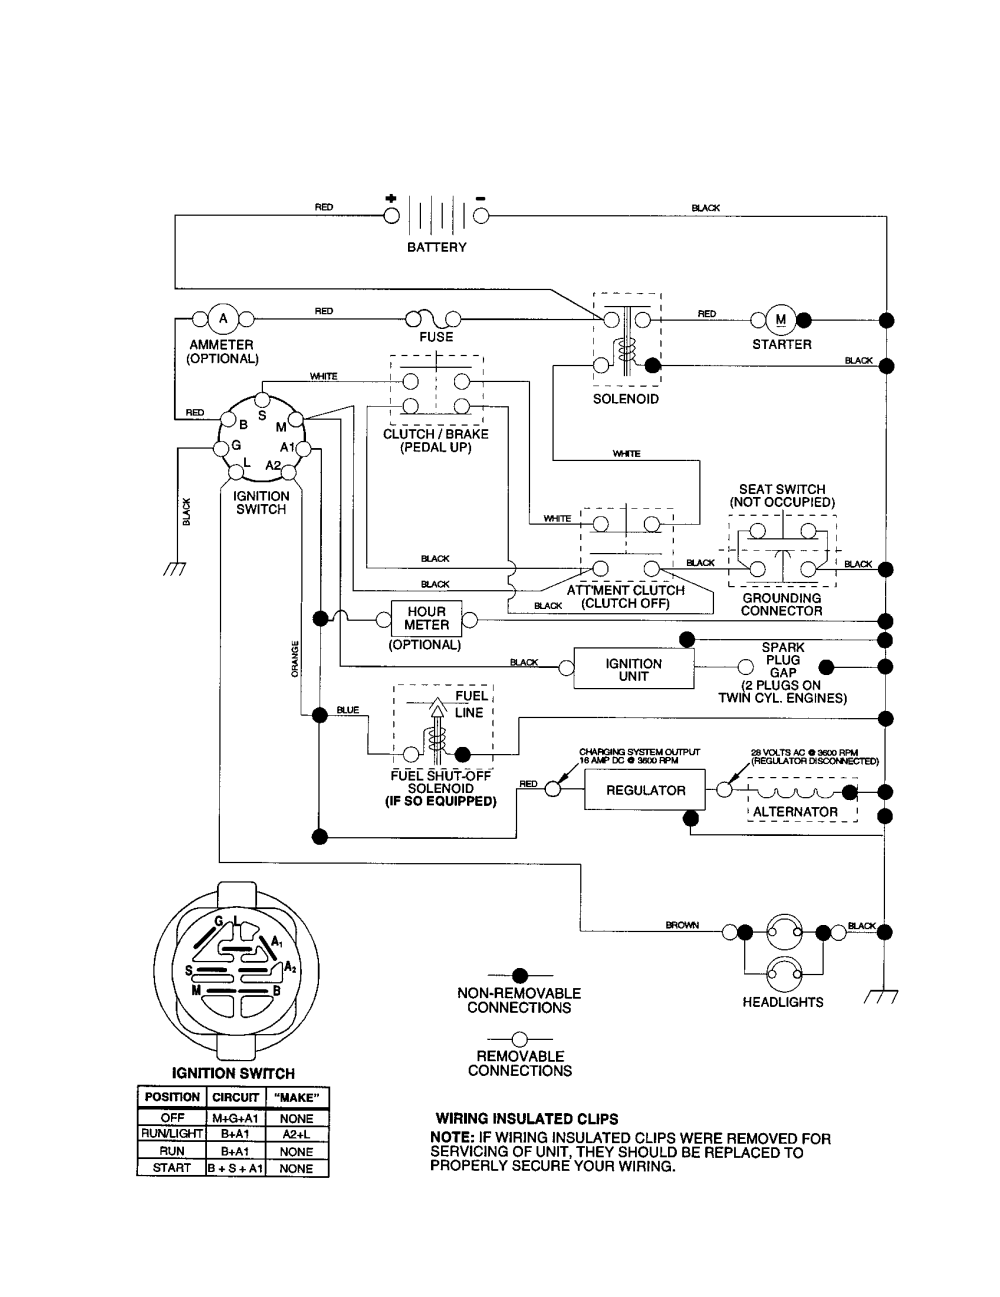 medium resolution of poulan pro lawn mower wiring diagram poulan free engine husqvarna lawn mower wiring diagram lawn mower solenoid wiring diagram